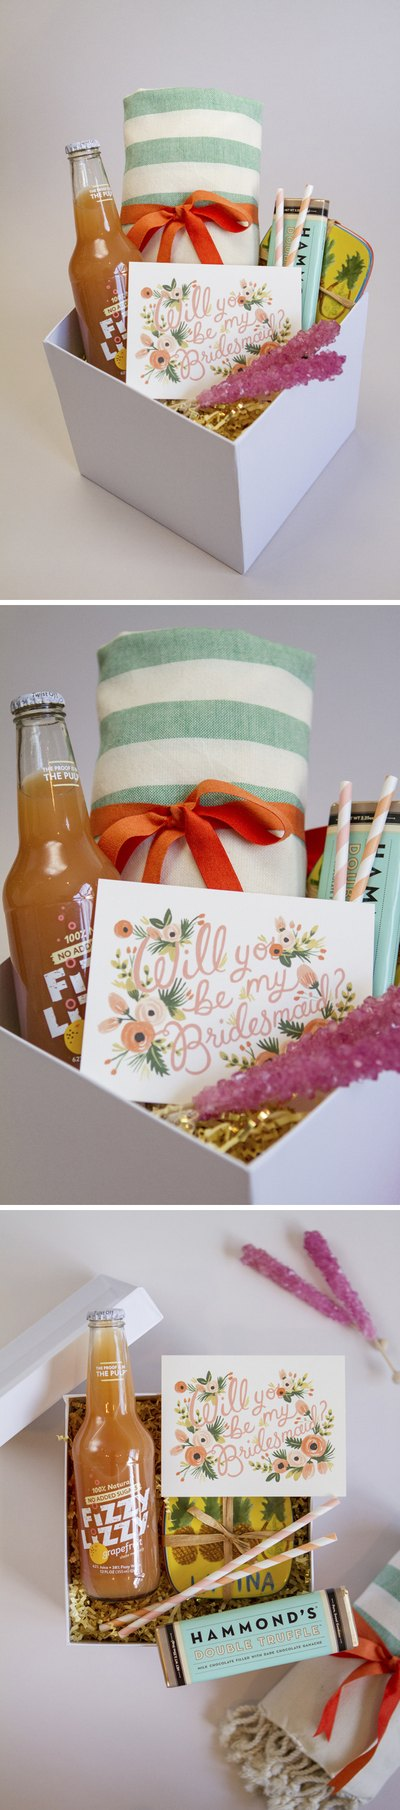 Add a sweet card to finish off your bridesmaid box.